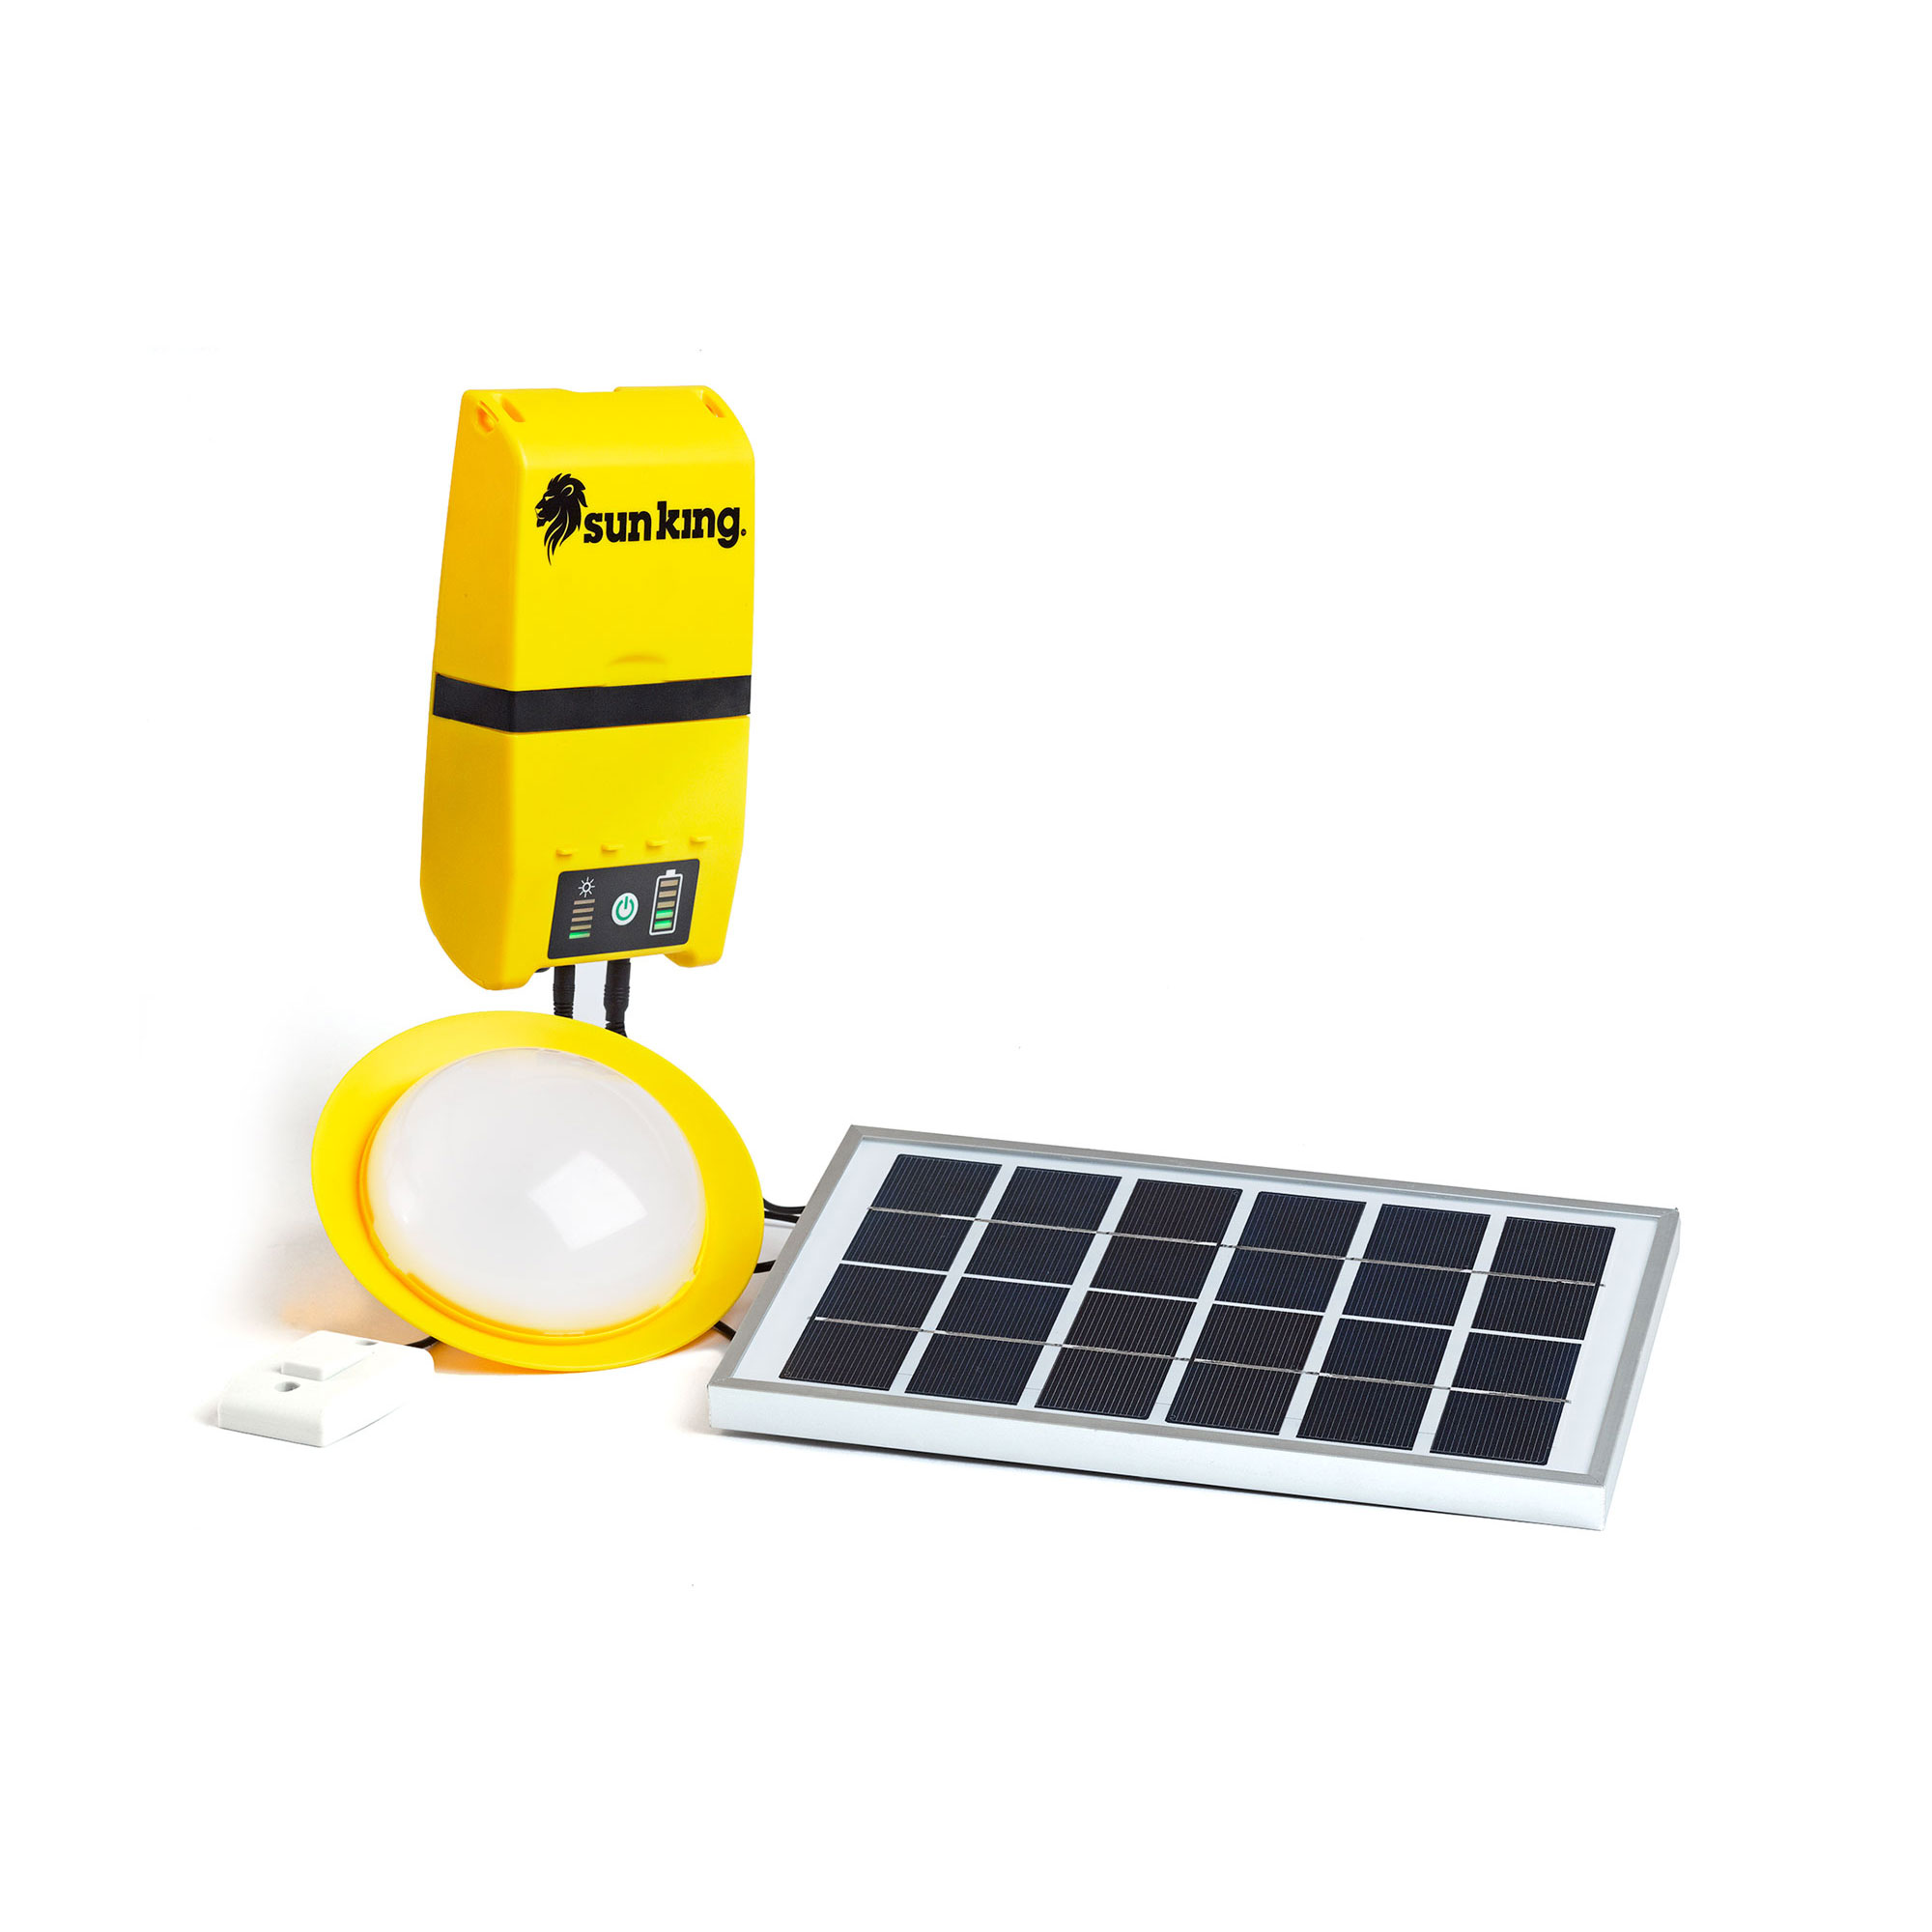 Sun King Home Solar Light System